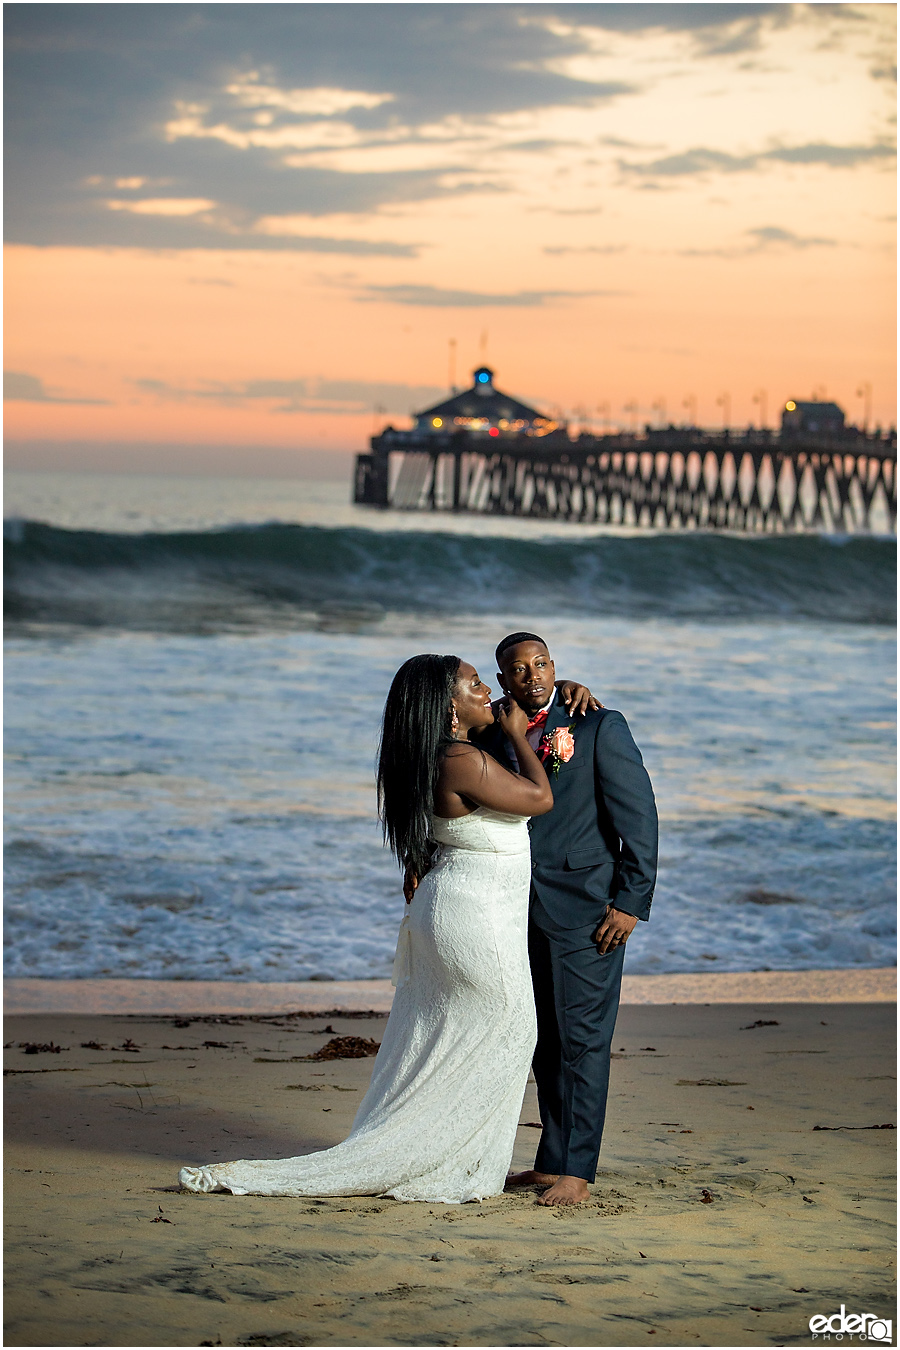 Imperial Beach wedding portraits